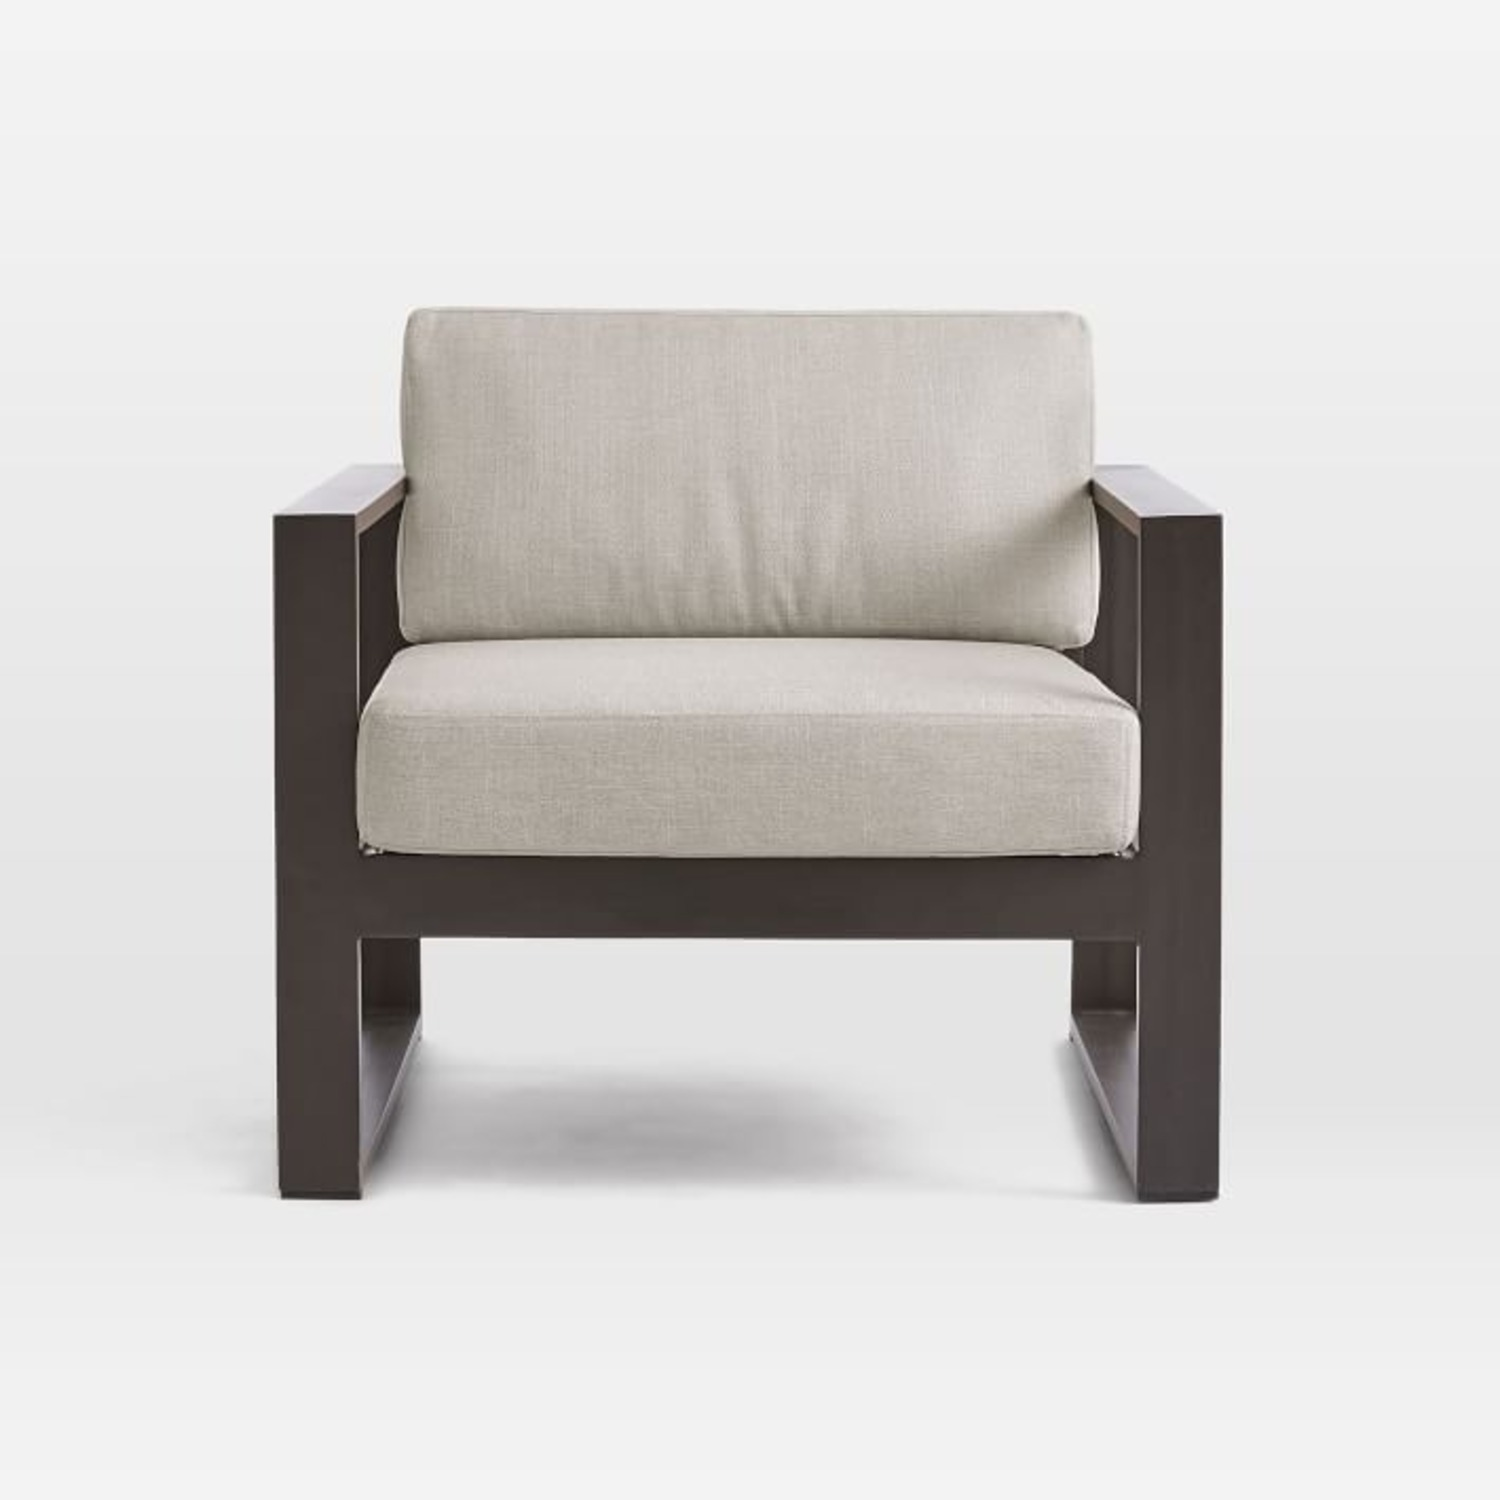 West Elm Portside Aluminum Outdoor Lounge Chair - image-3